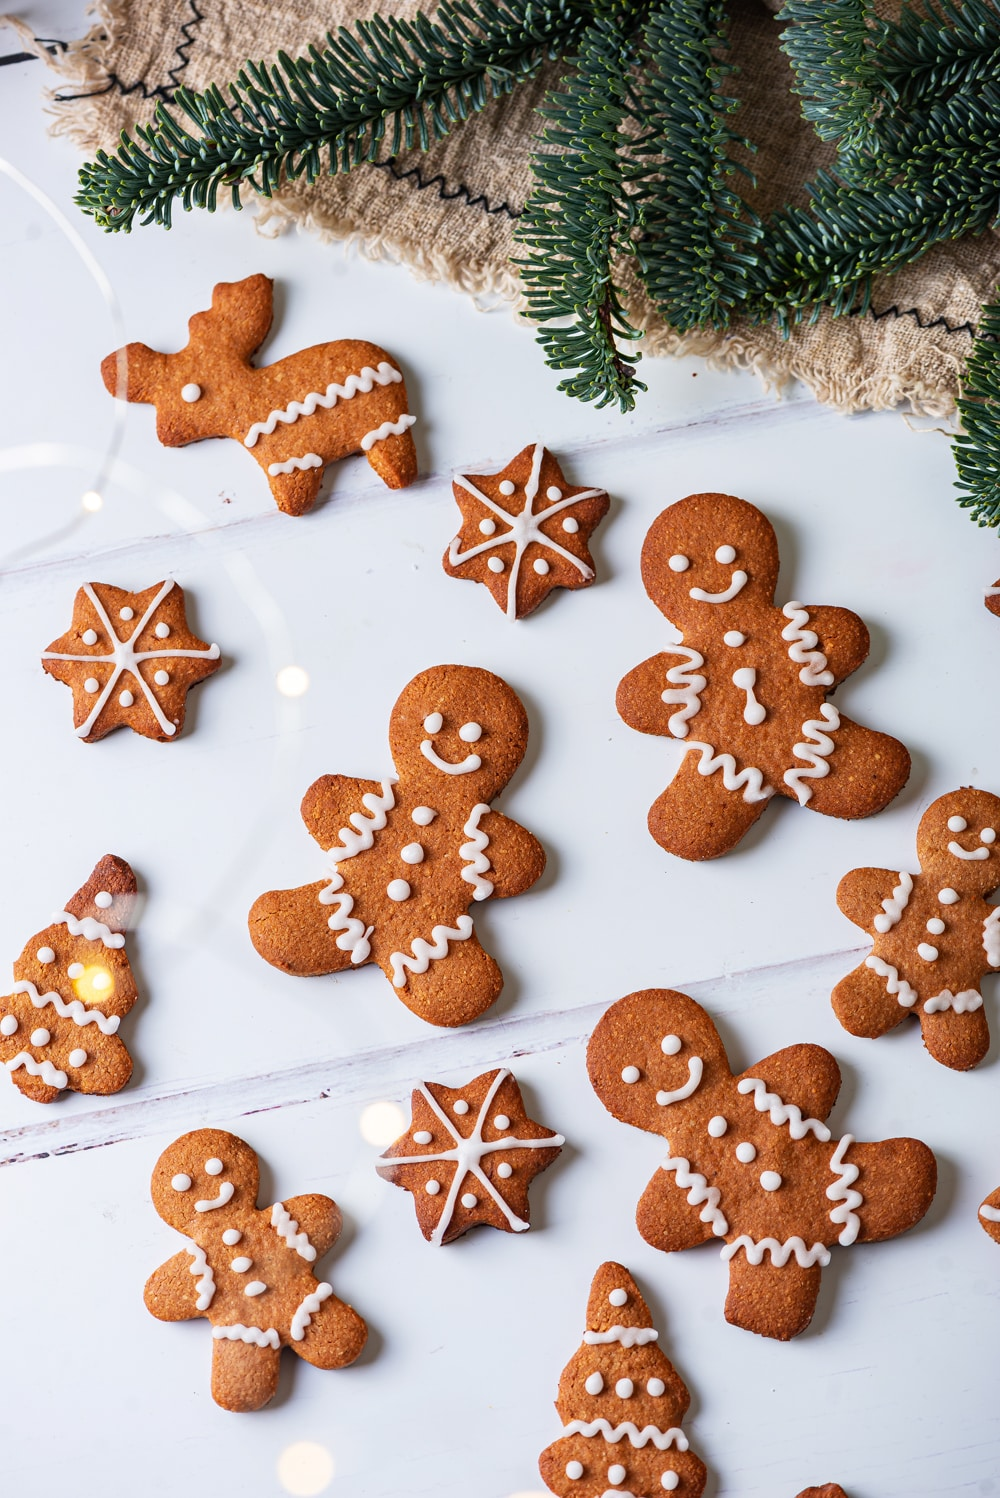 Gingerbread cookies on a white table, with green pine branches above them.